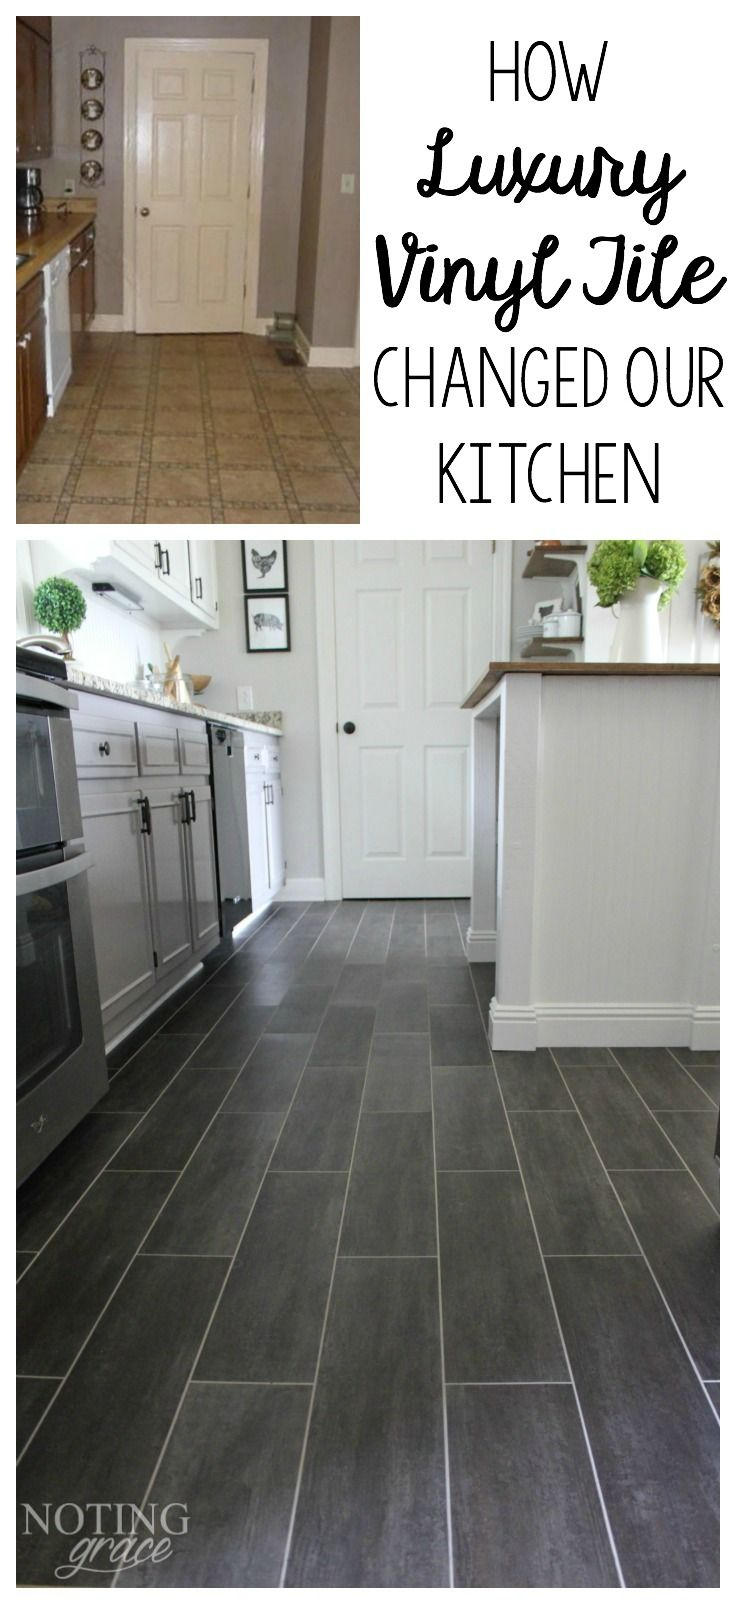 Diy kitchen flooring luxury vinyl tile vinyl tiles and for Vinyl flooring kitchen